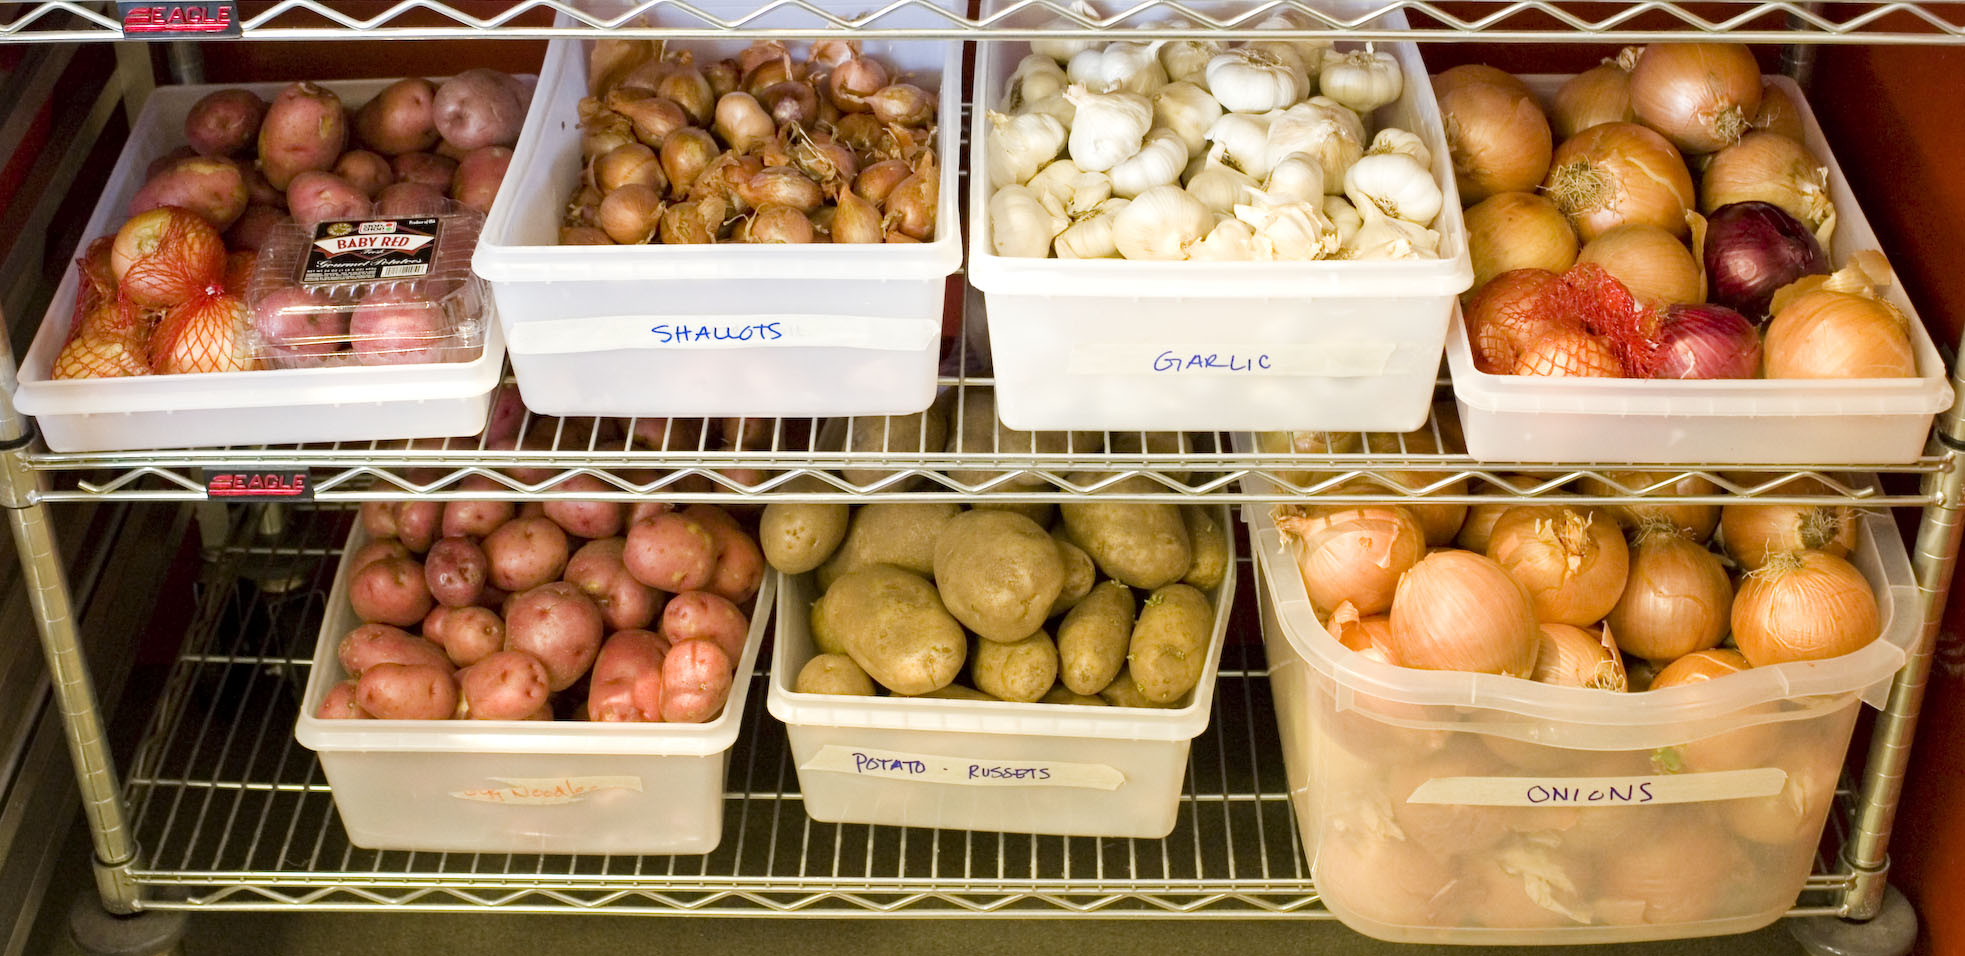 Wonderful Different Types Of Produce Have Different Storage Requirements; Some Need  To Be Placed In The Coldest Part Of The Refrigerator, Some Need Humidity,  ...